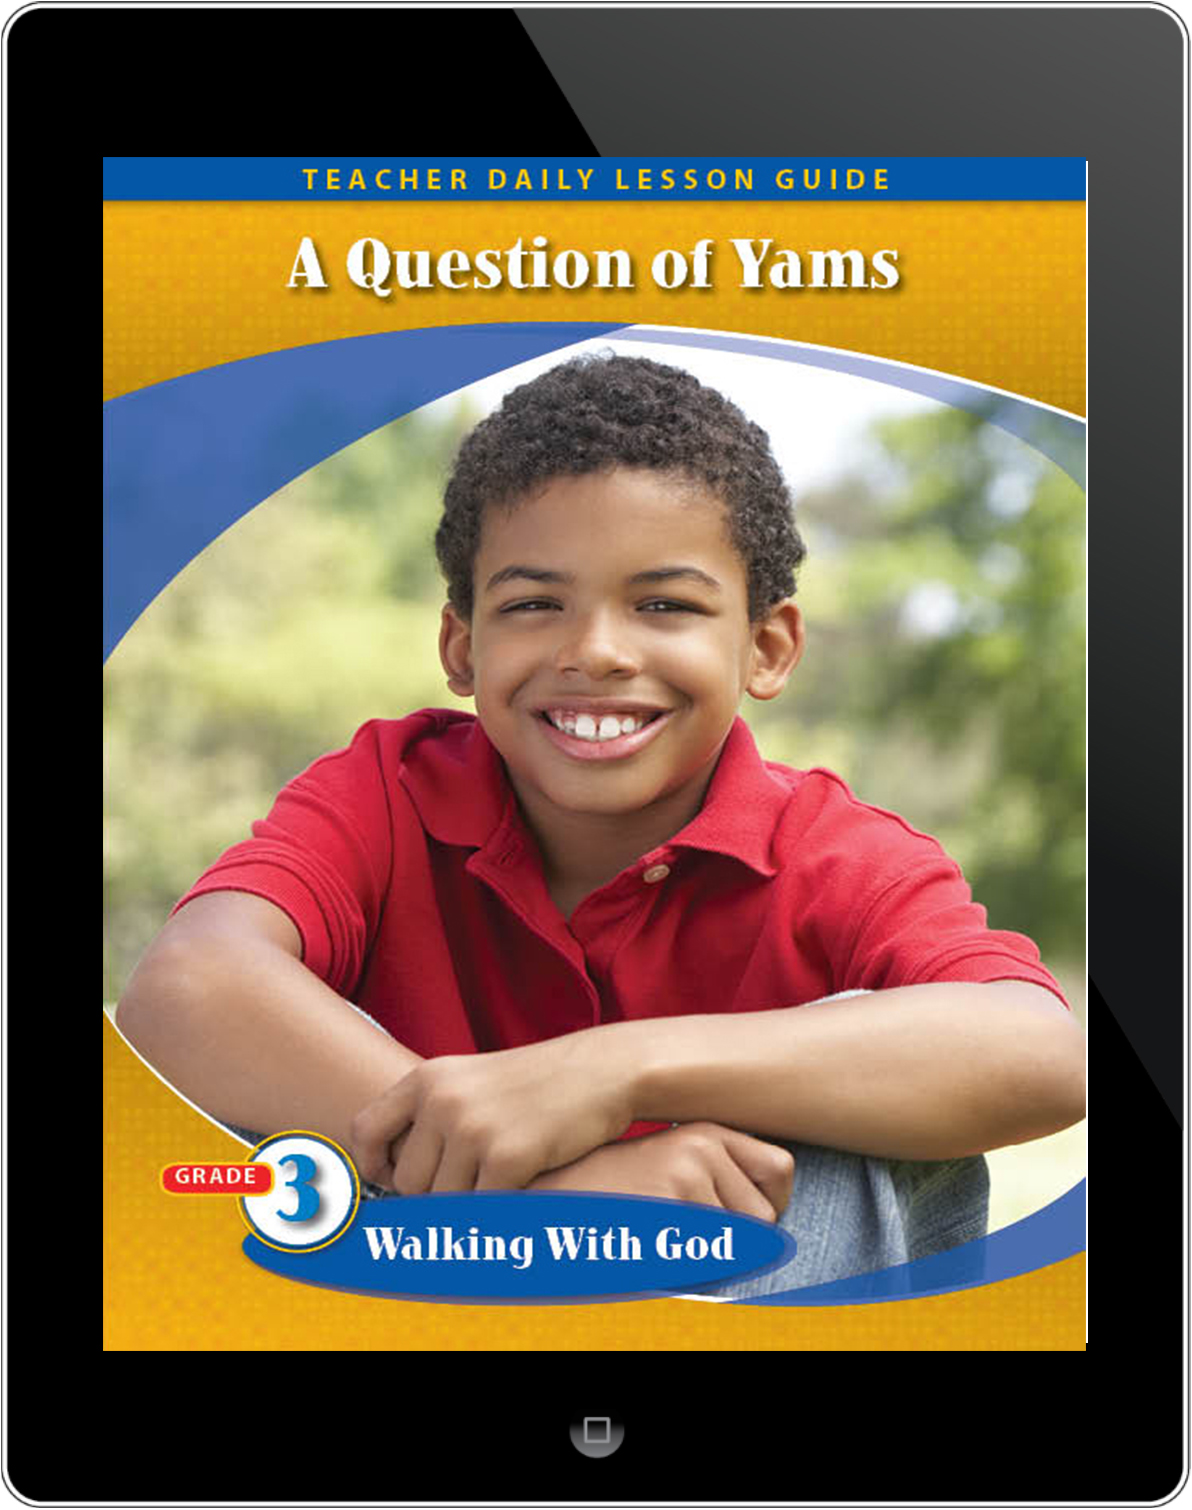 Pathways2.0 Grade 3 Walking with God Unit: A Question of Yams: A Missionary Story Based on True Events Lesson Guide 5 Year License